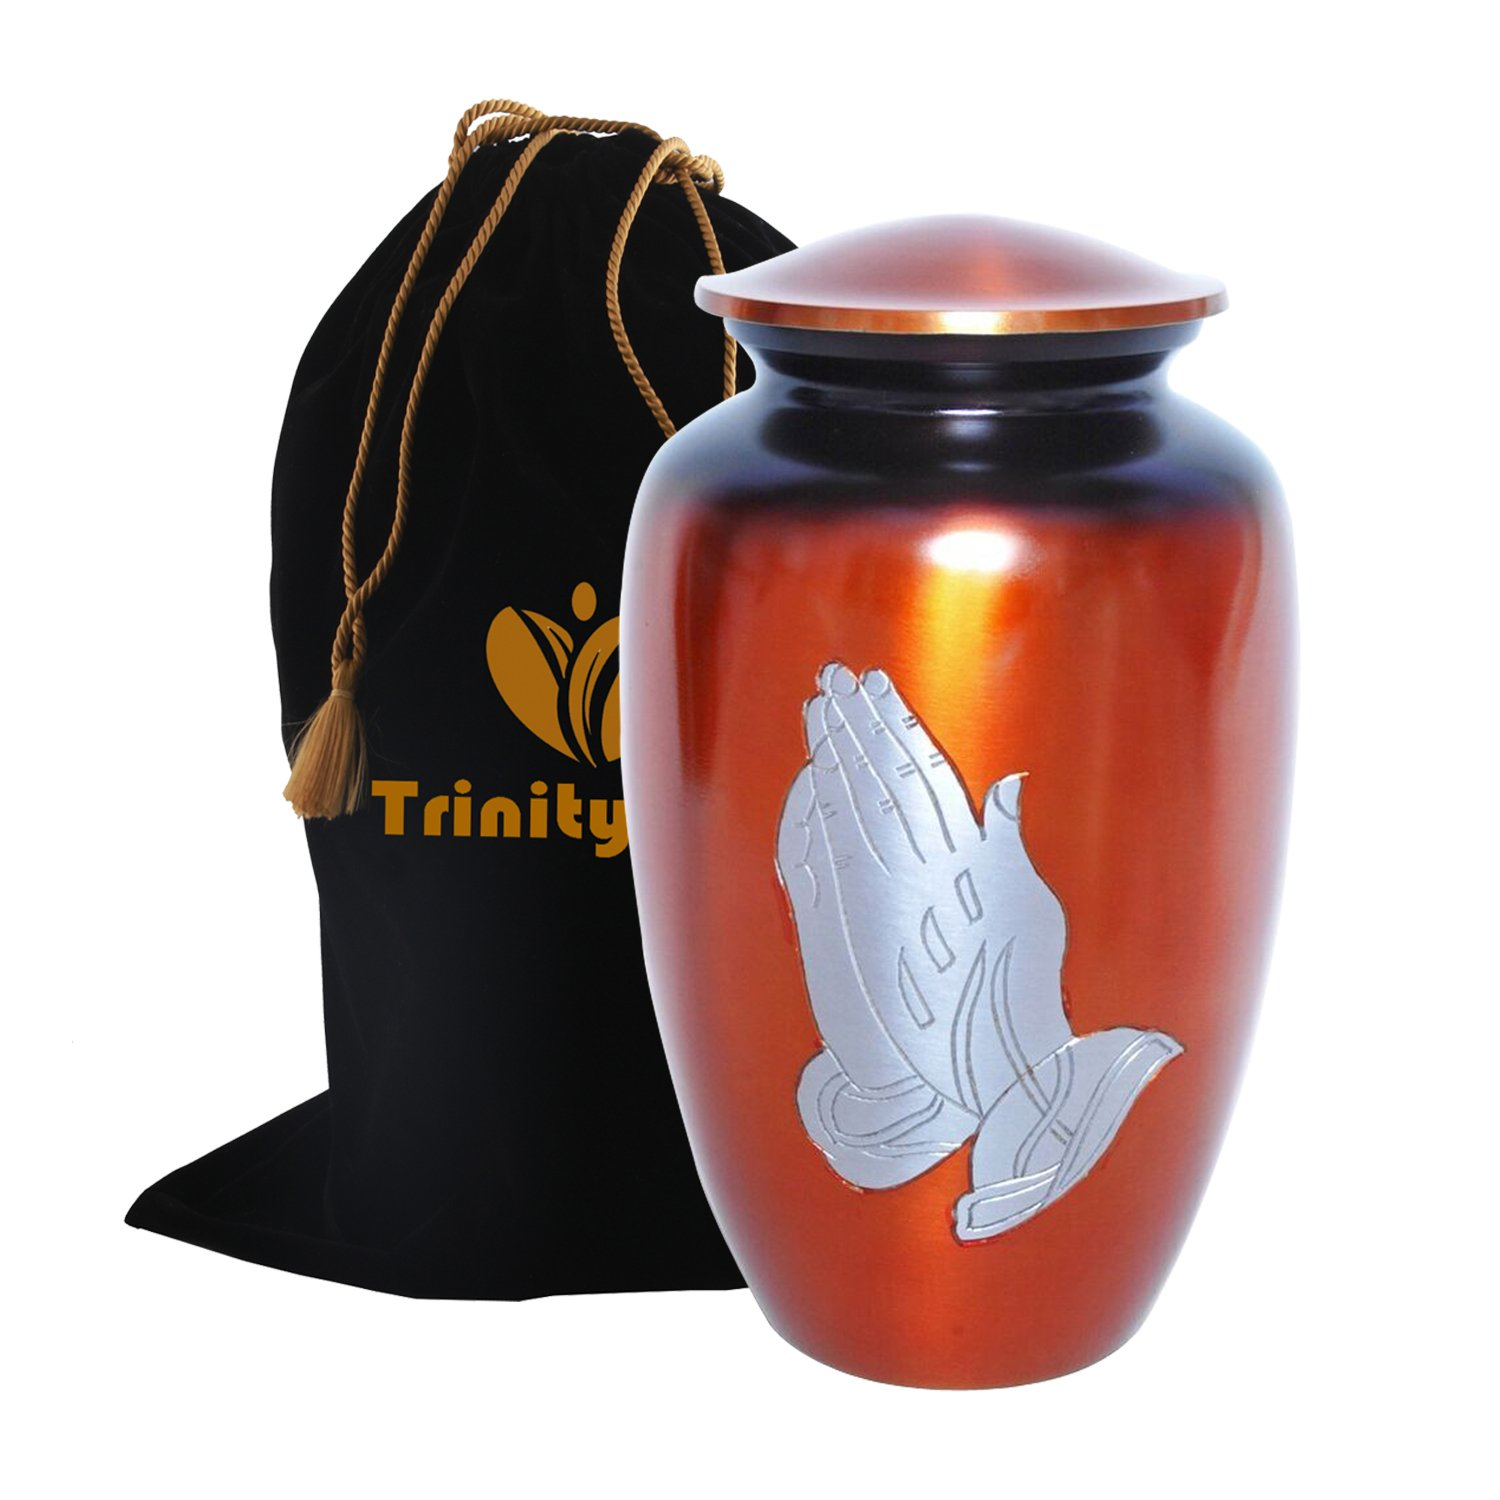 Praying Hand Cremation Urn - Beautifully Handcrafted Adult Funeral Urn - Solid Metal Funeral Urn - Affordable Urn for Human Ashes with Free Velvet Bag